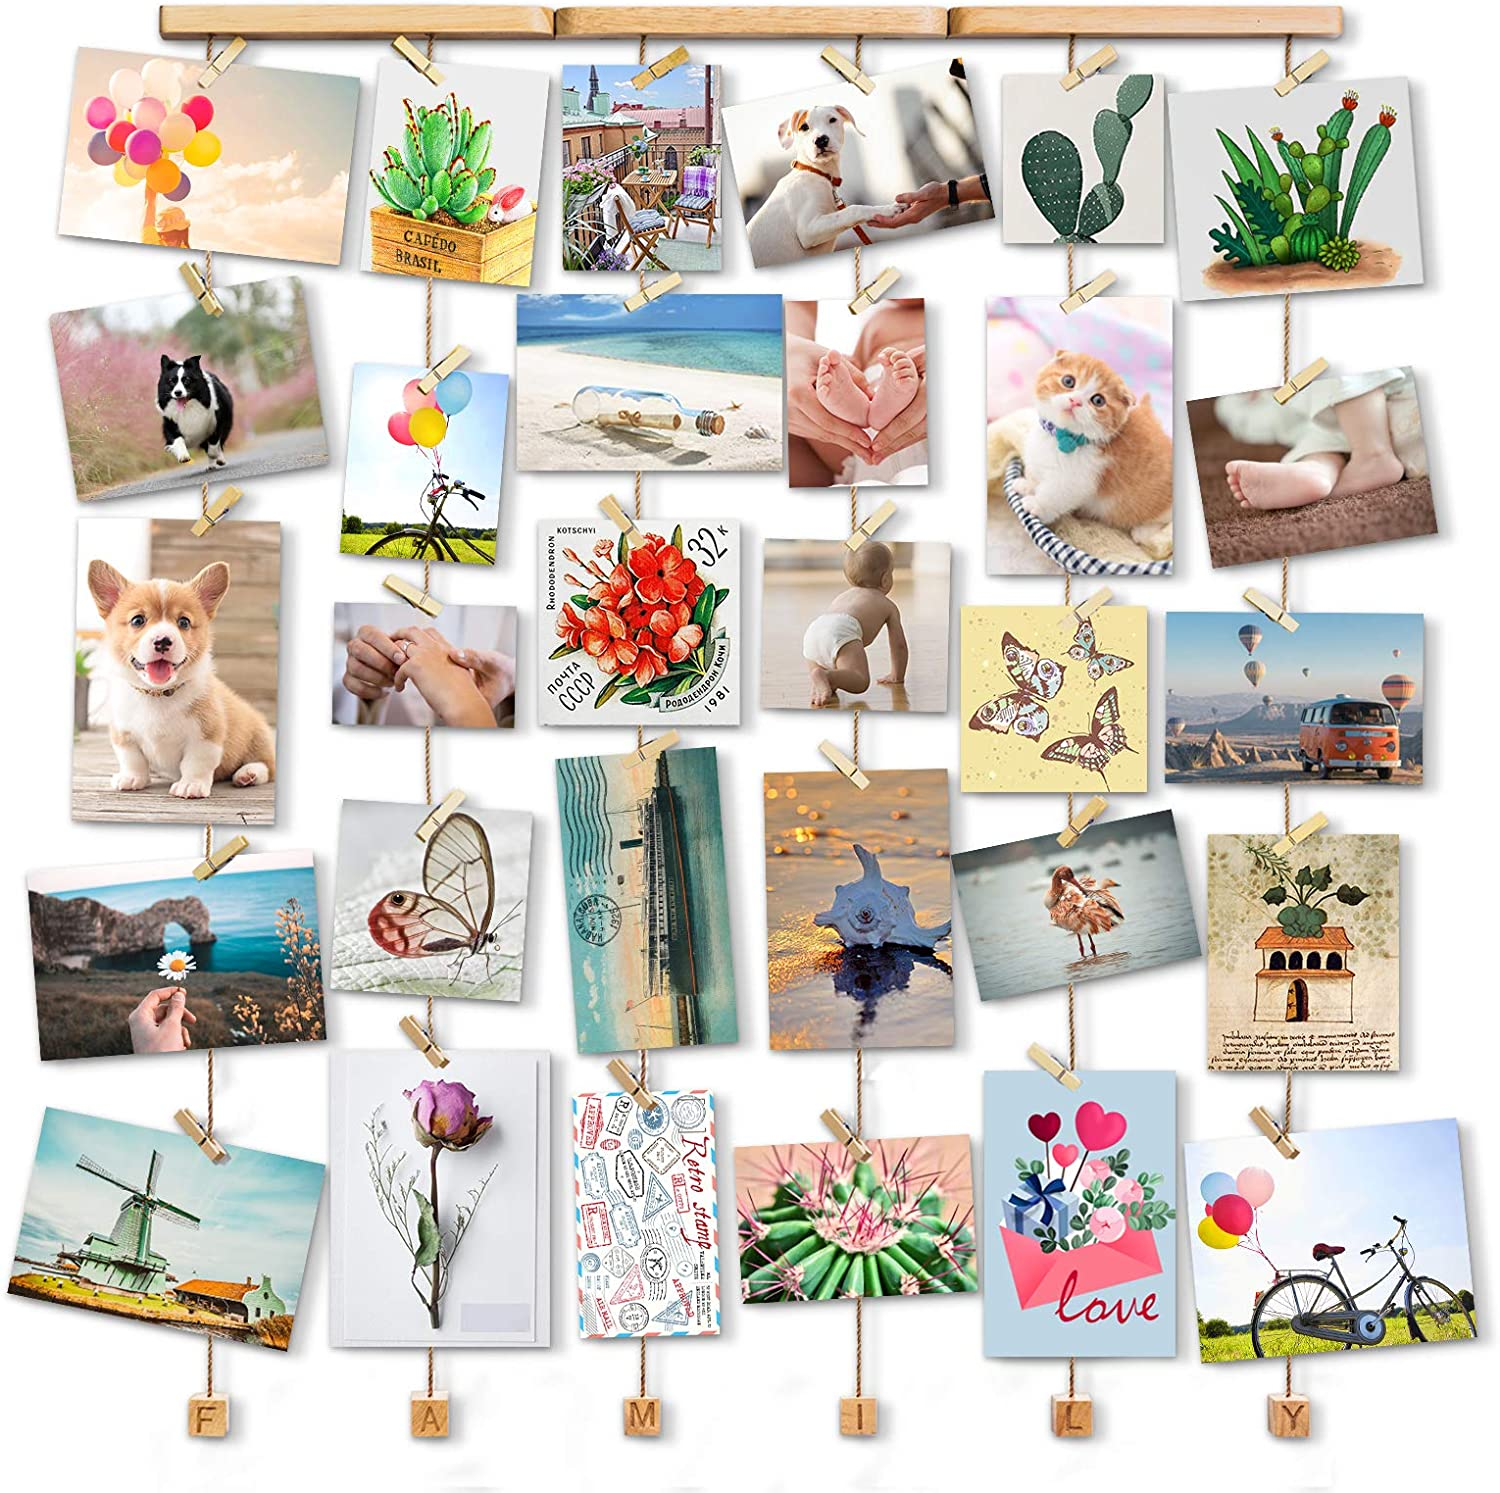 Love-KANKEI Family Picture Frame Collage Picture Frame for Wall Hanging Display 30 Pegs for Mixed Size Picture